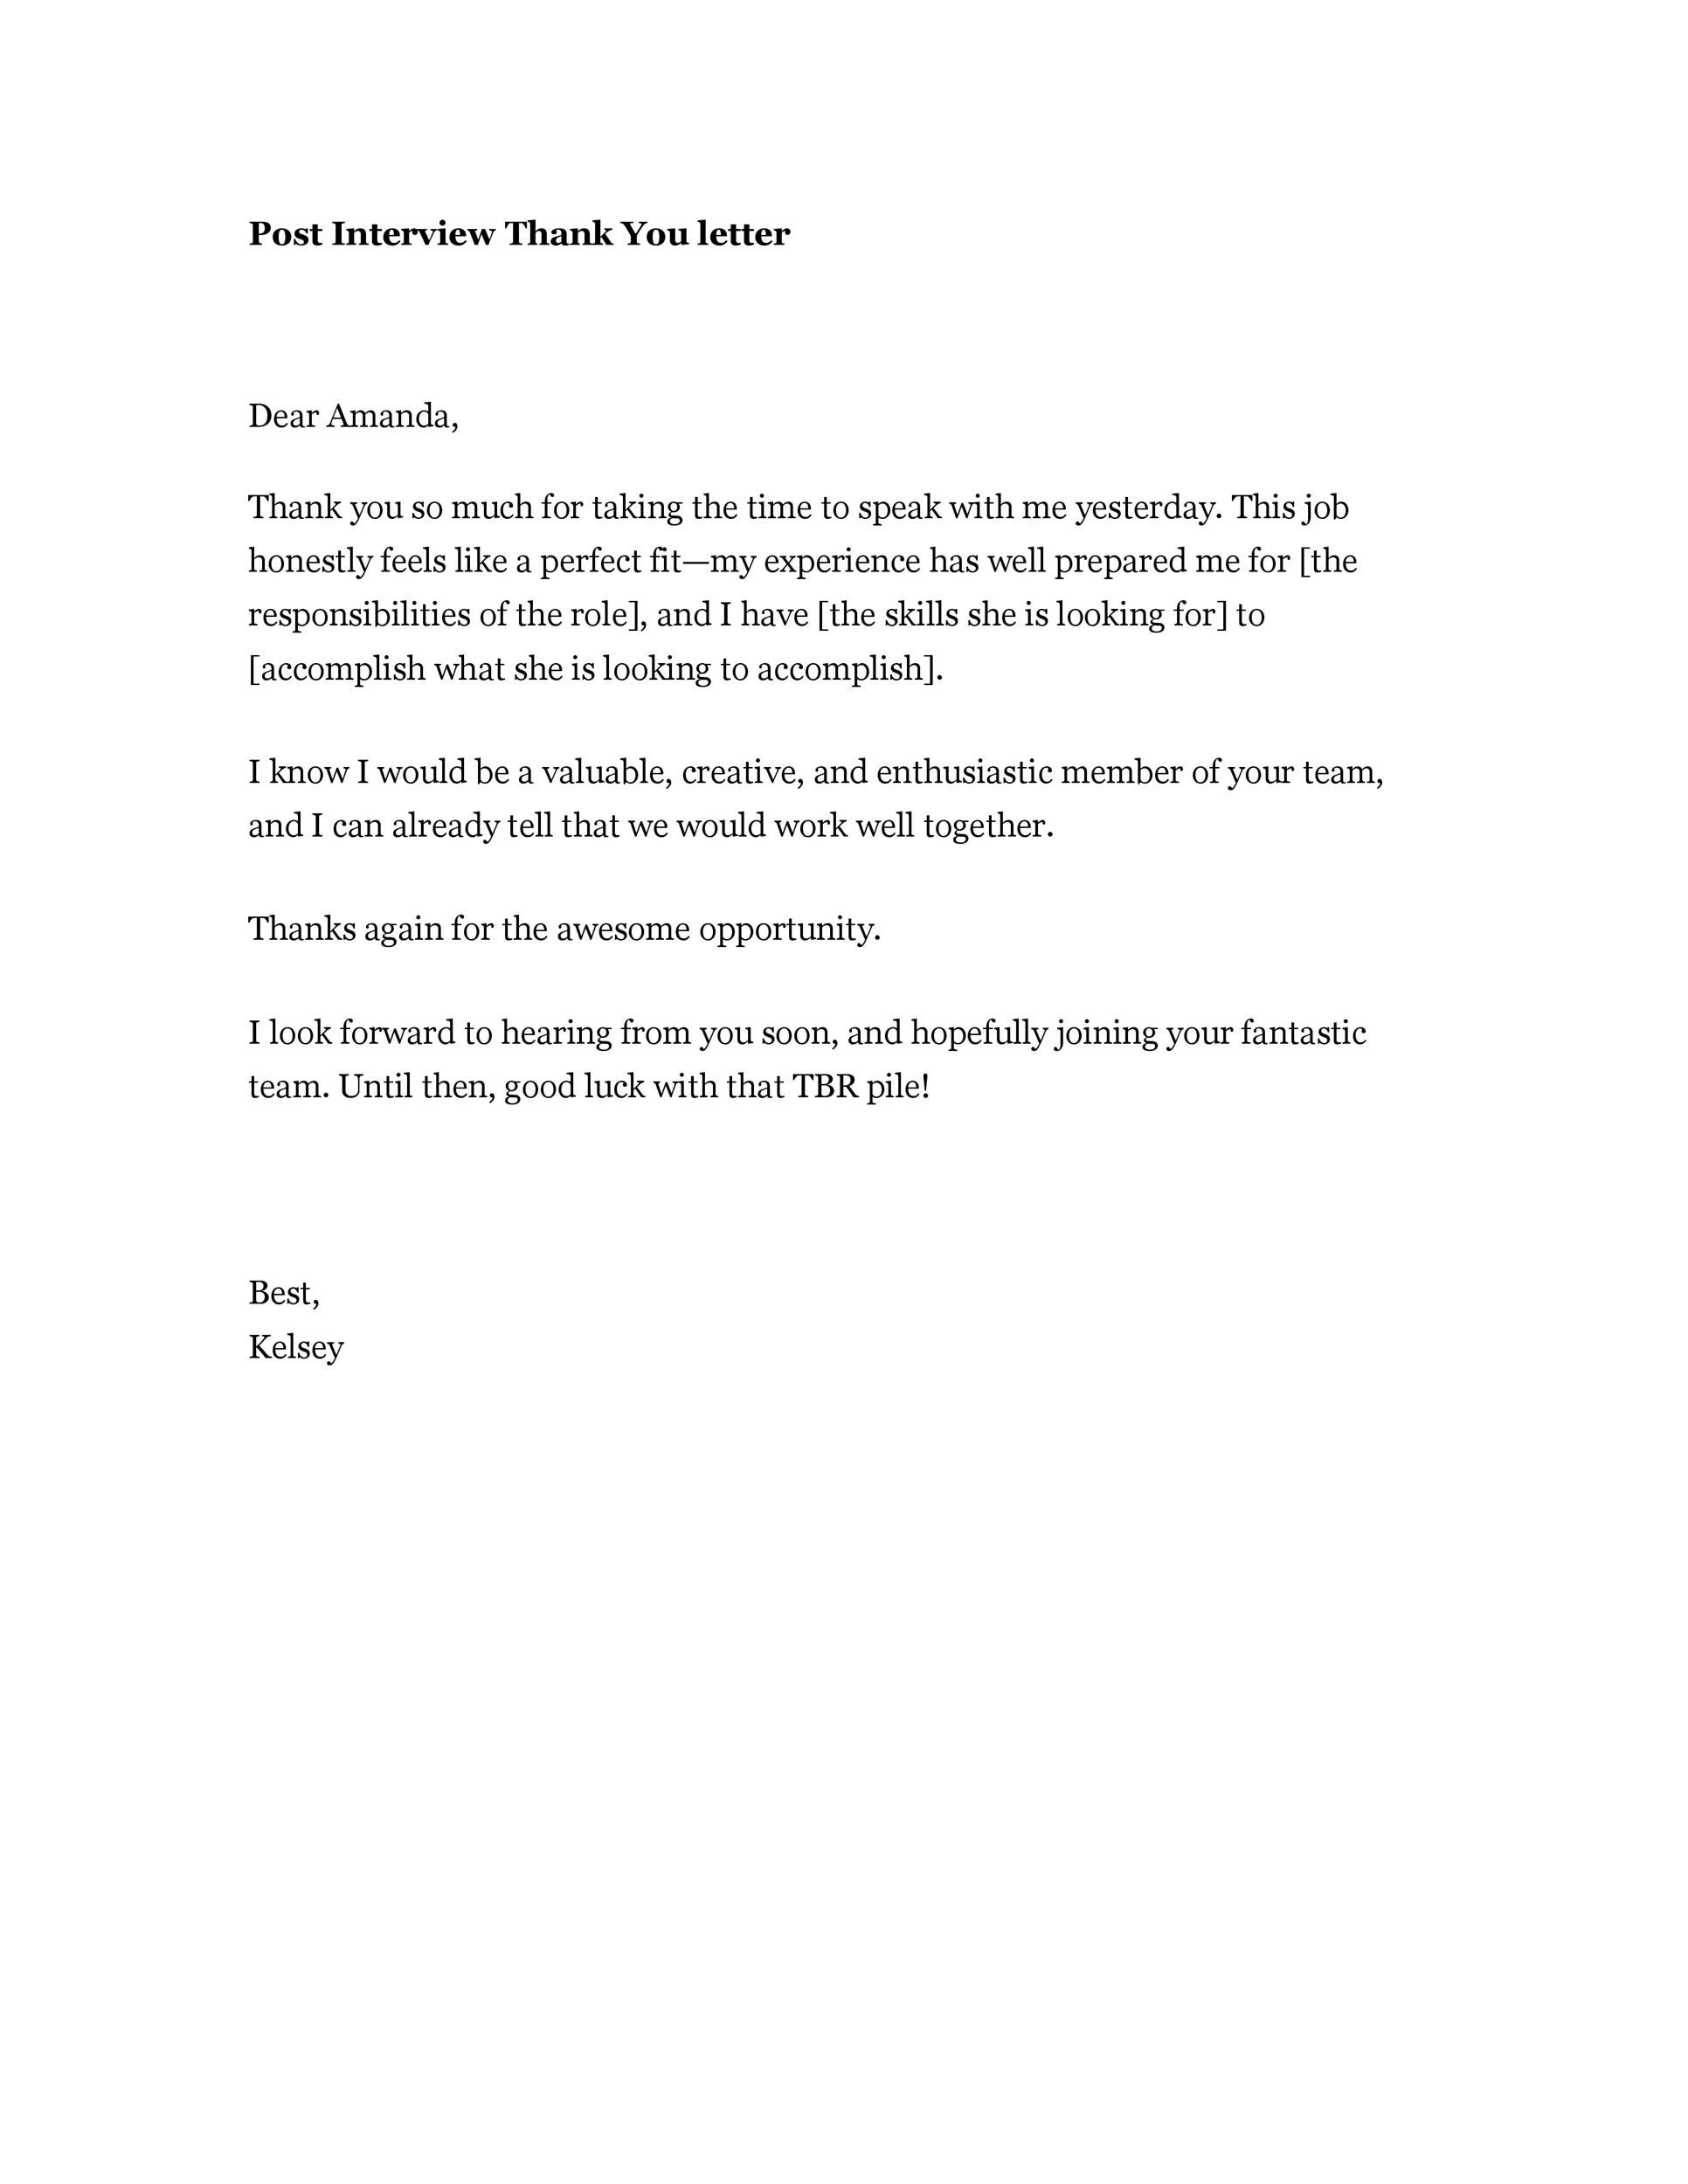 sample email thank you letter after interview   Hadi.palmex.co